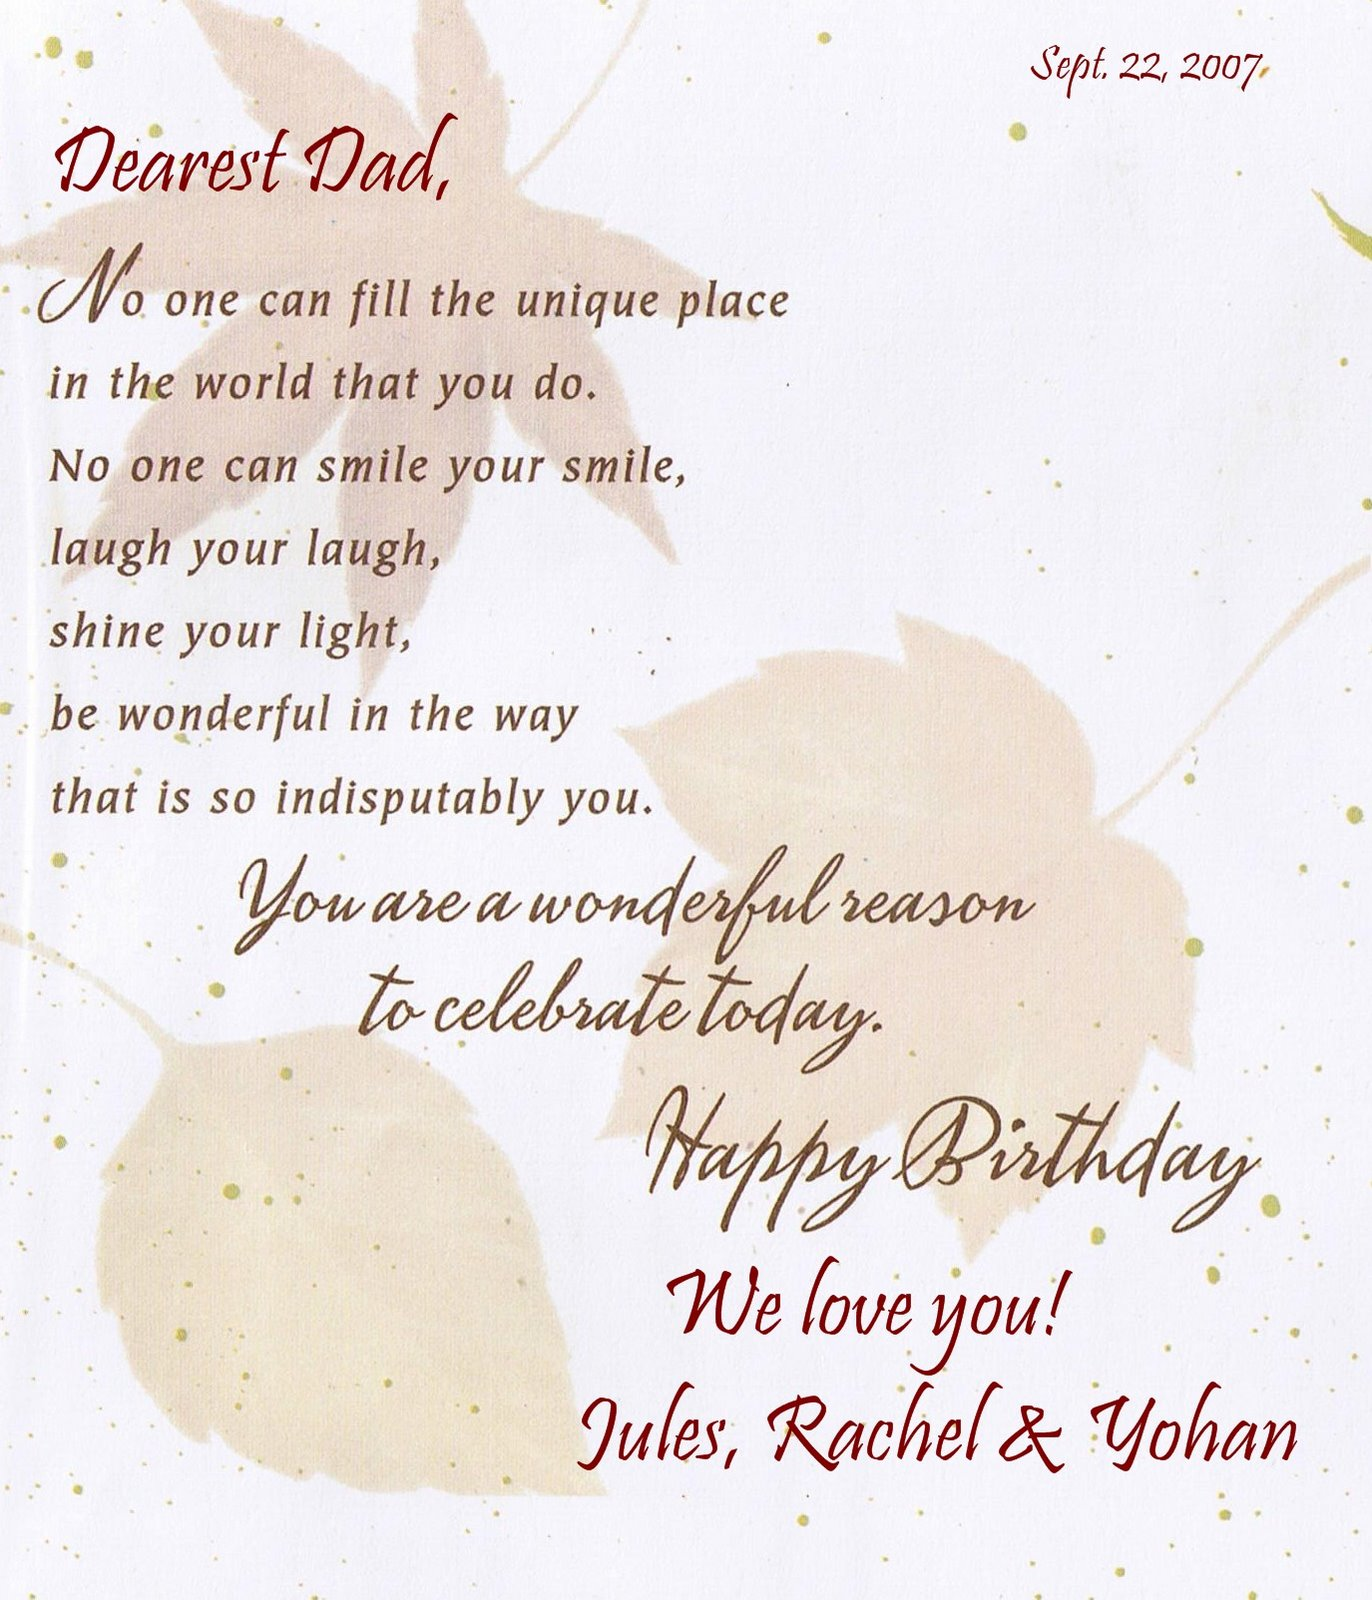 birthday in heaven quotes [2] Quotes links